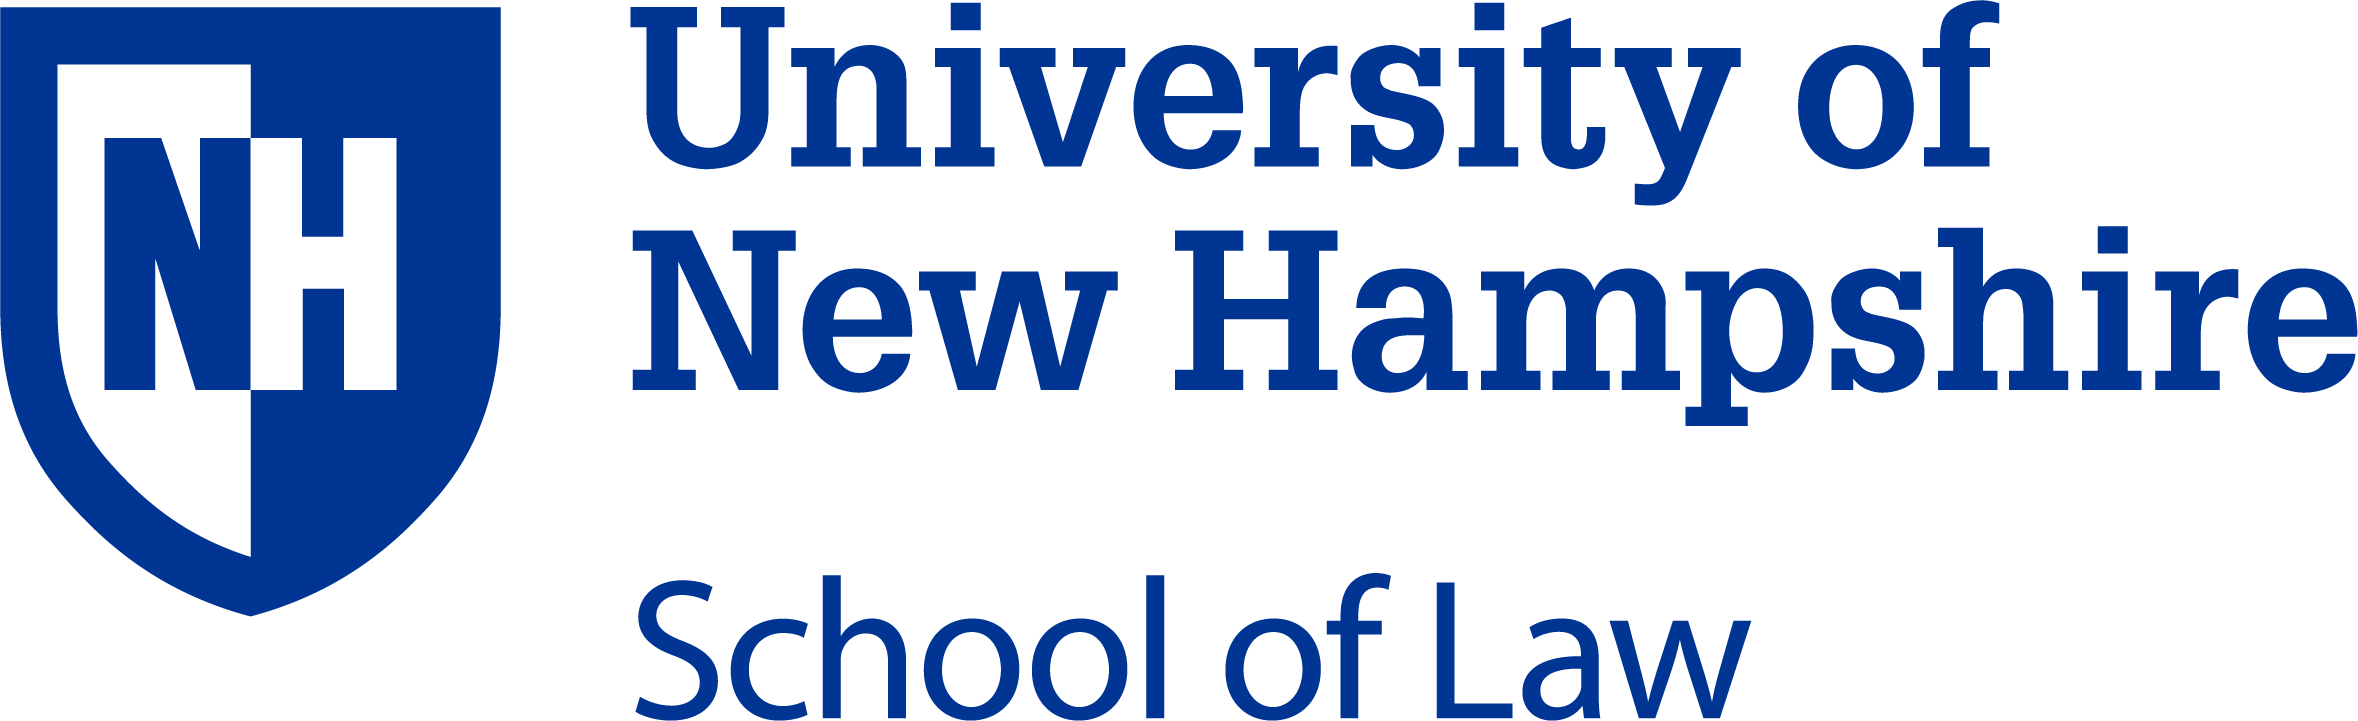 University of New Hampshire School of Law | Above the Law